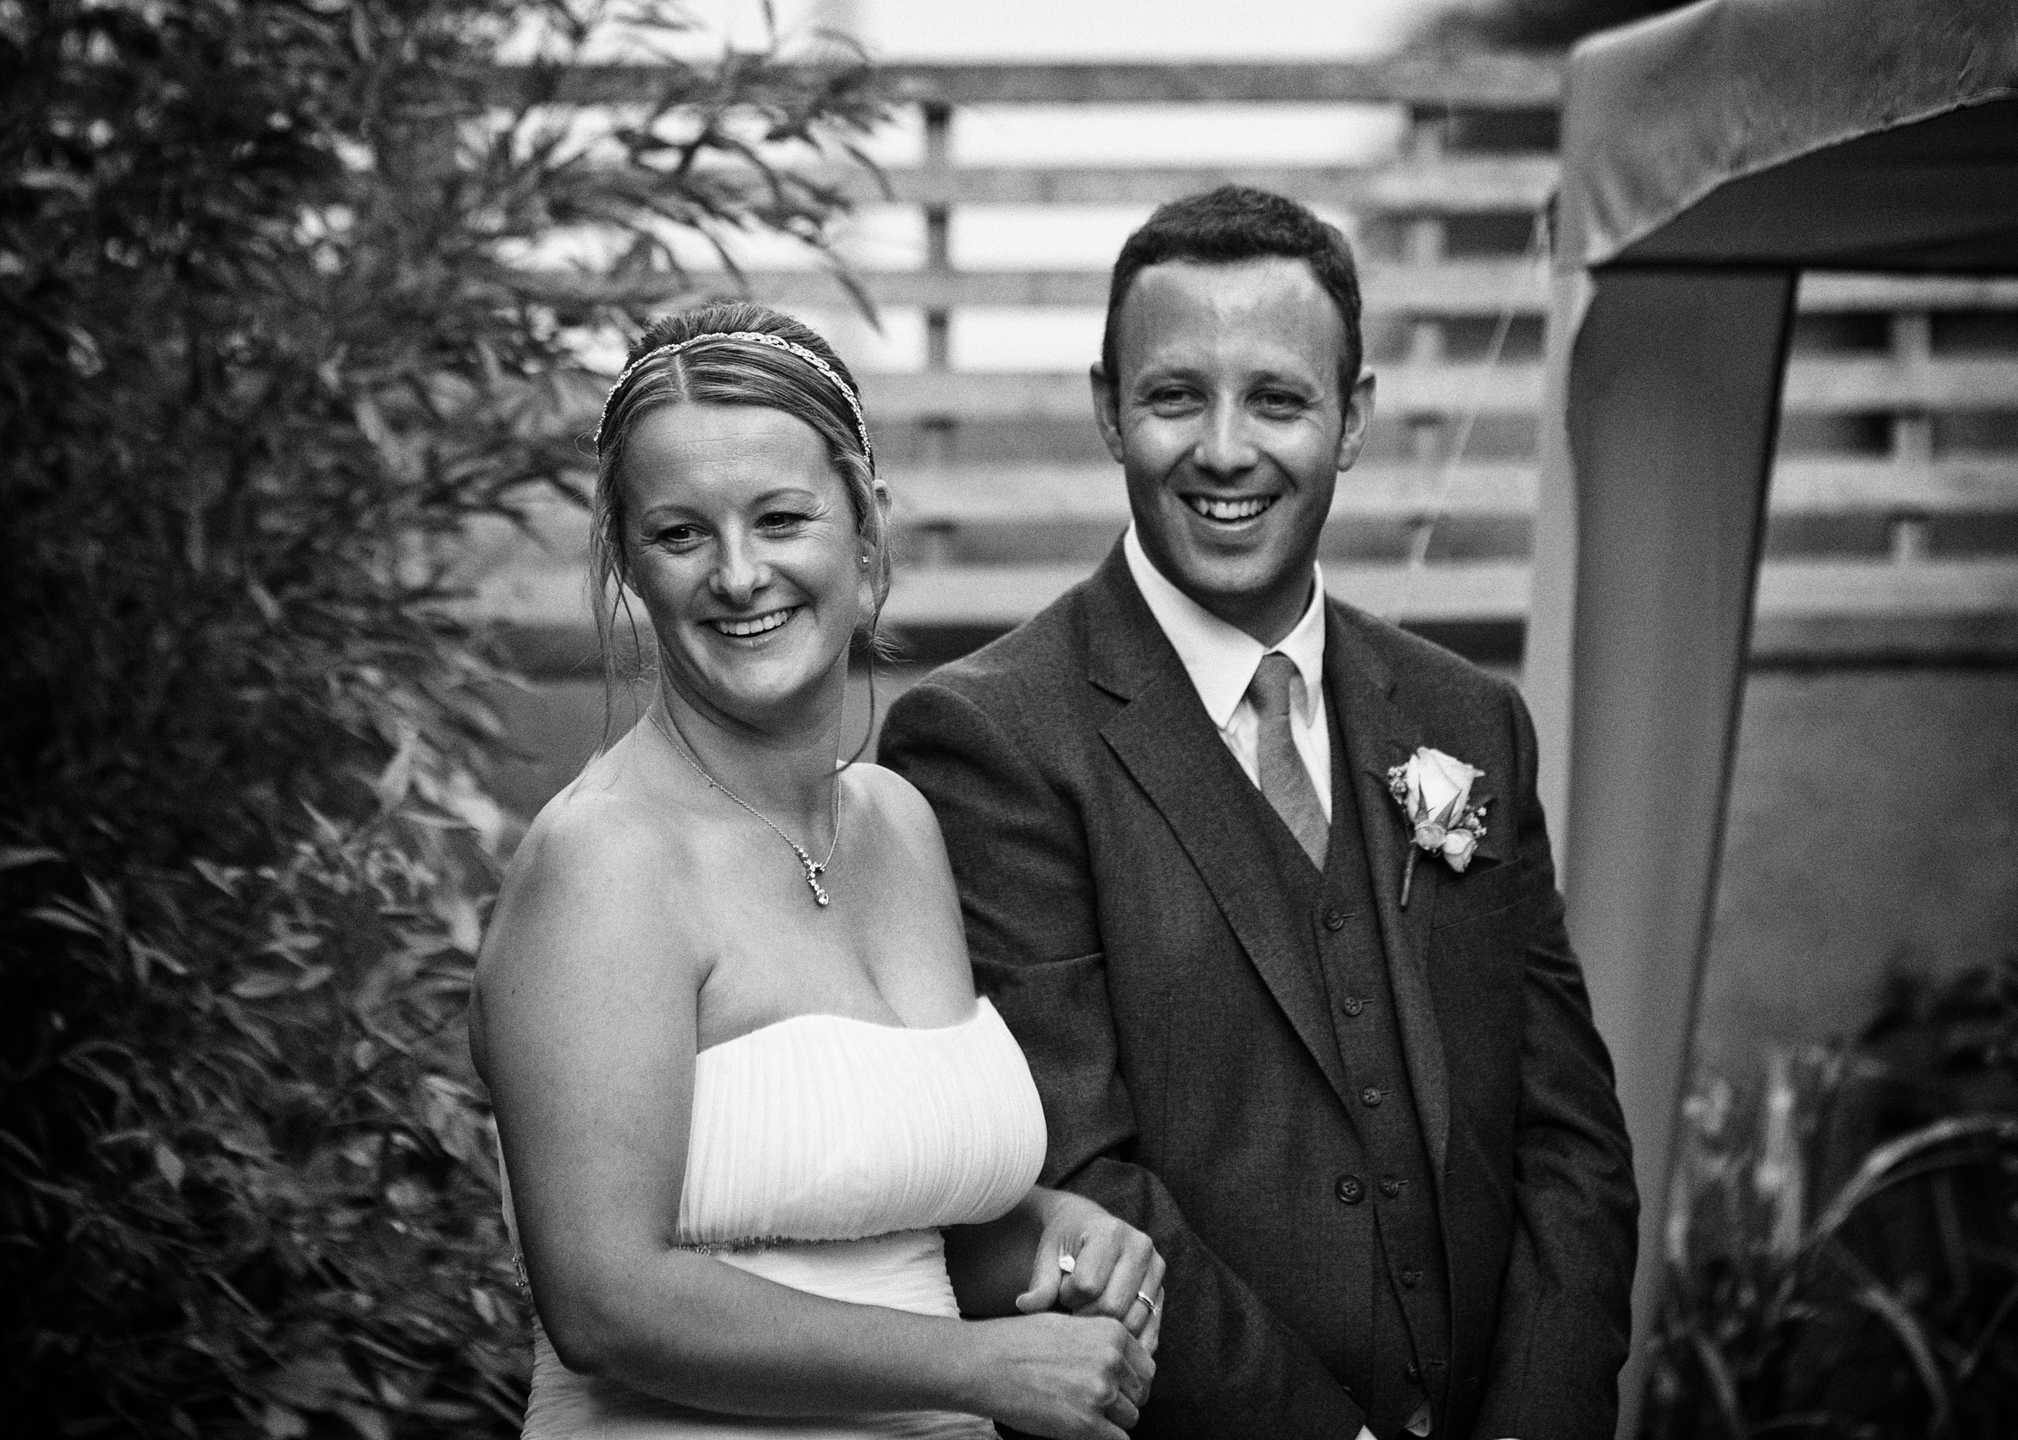 Pages wedding%20photo%20146